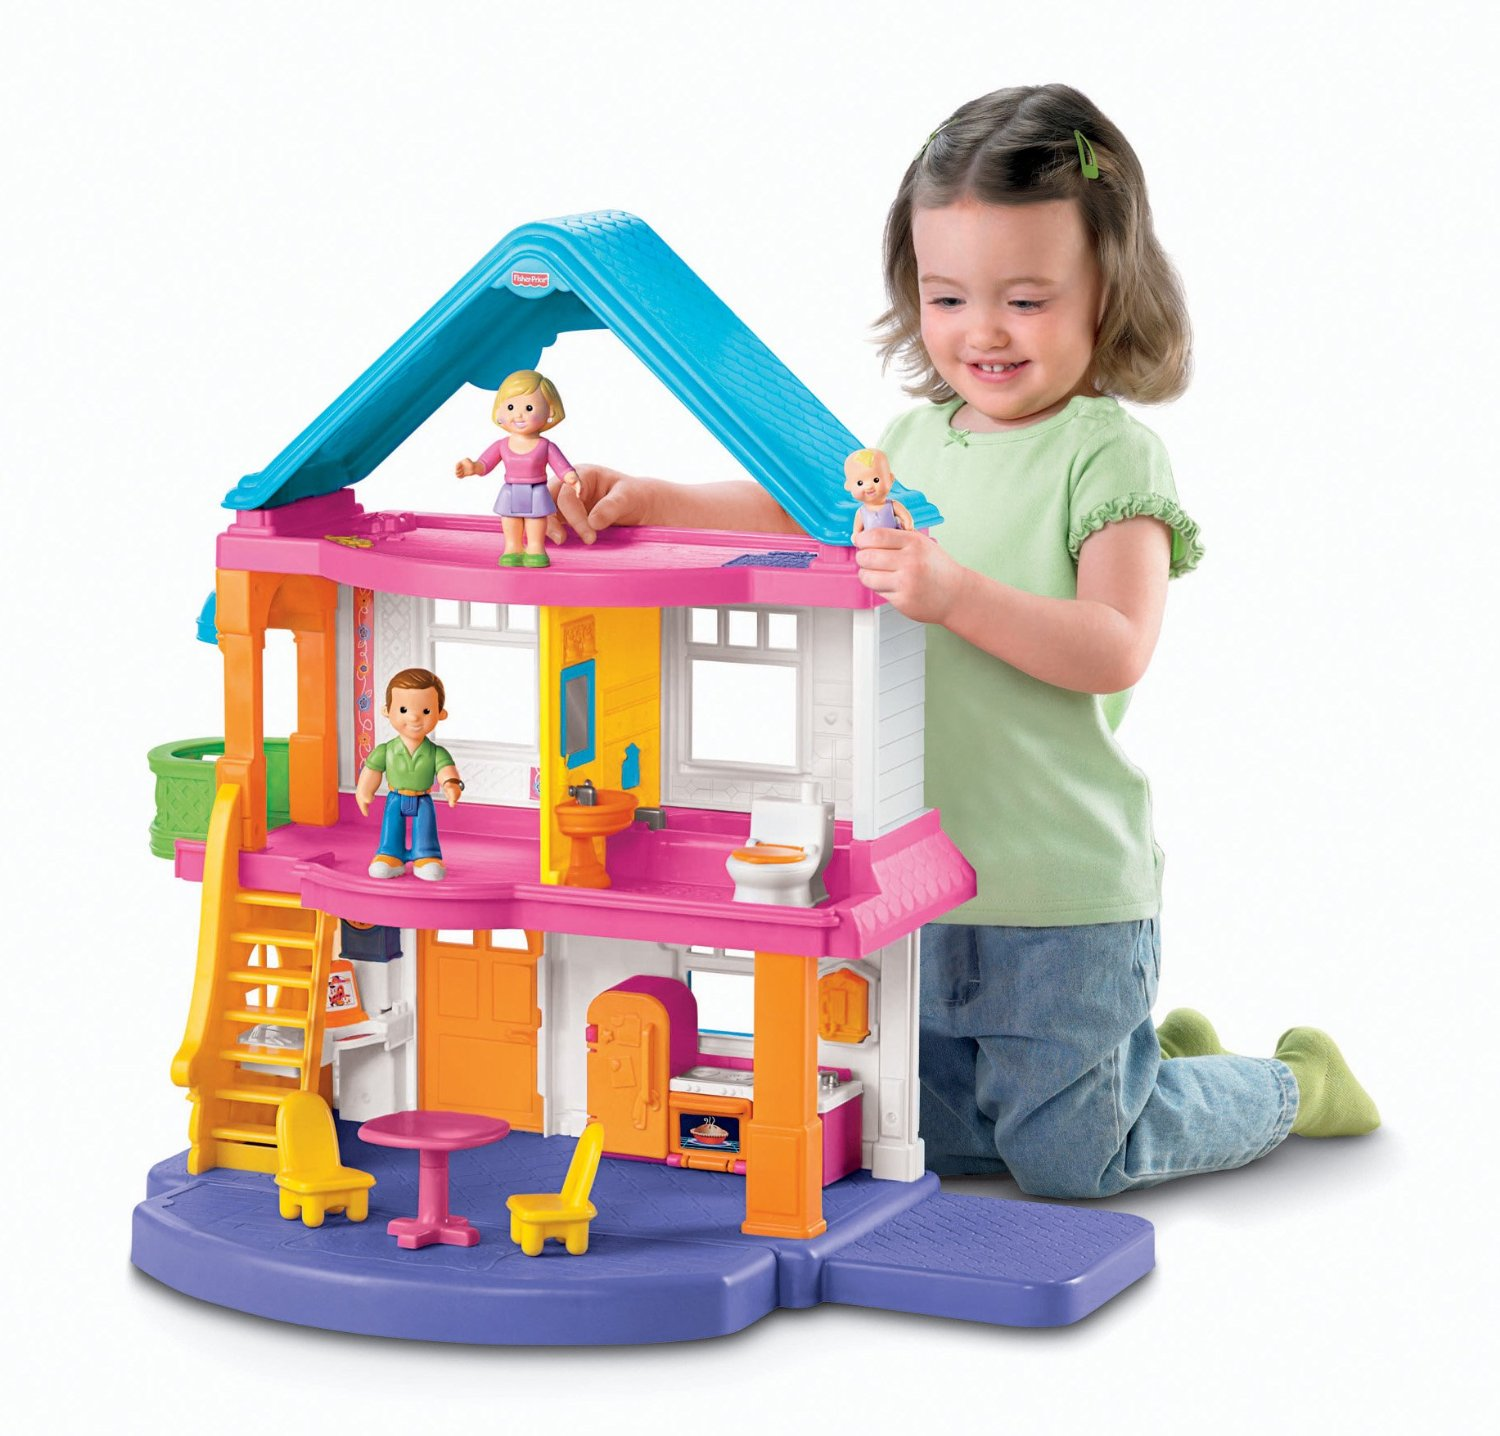 Best Dollhouse For Toddlers In 2018